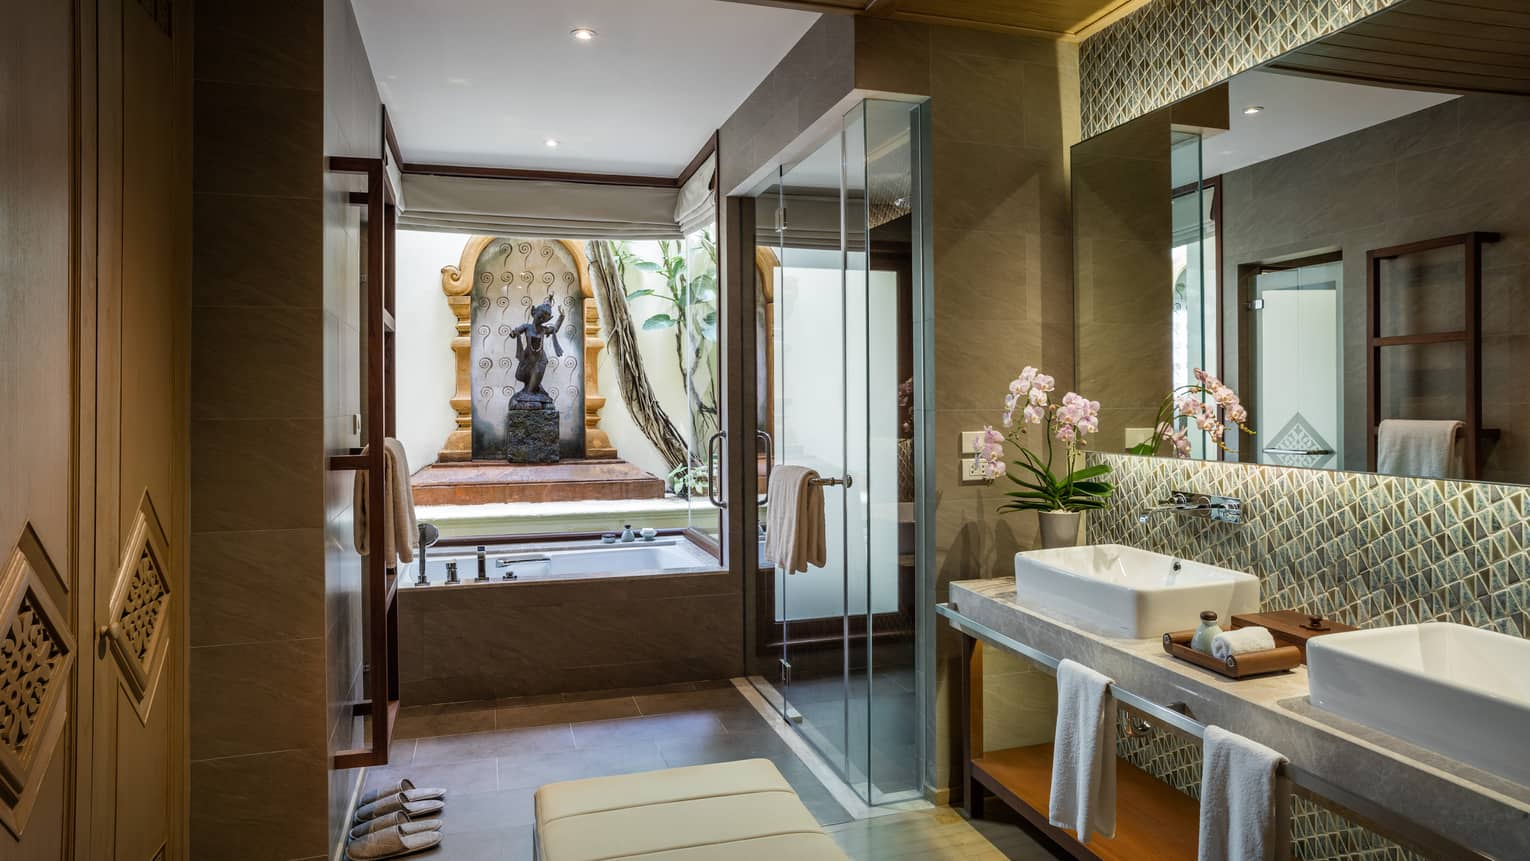 Garden Pavilion Room bathroom with double sink vanity, glass shower, tub under statue, monument